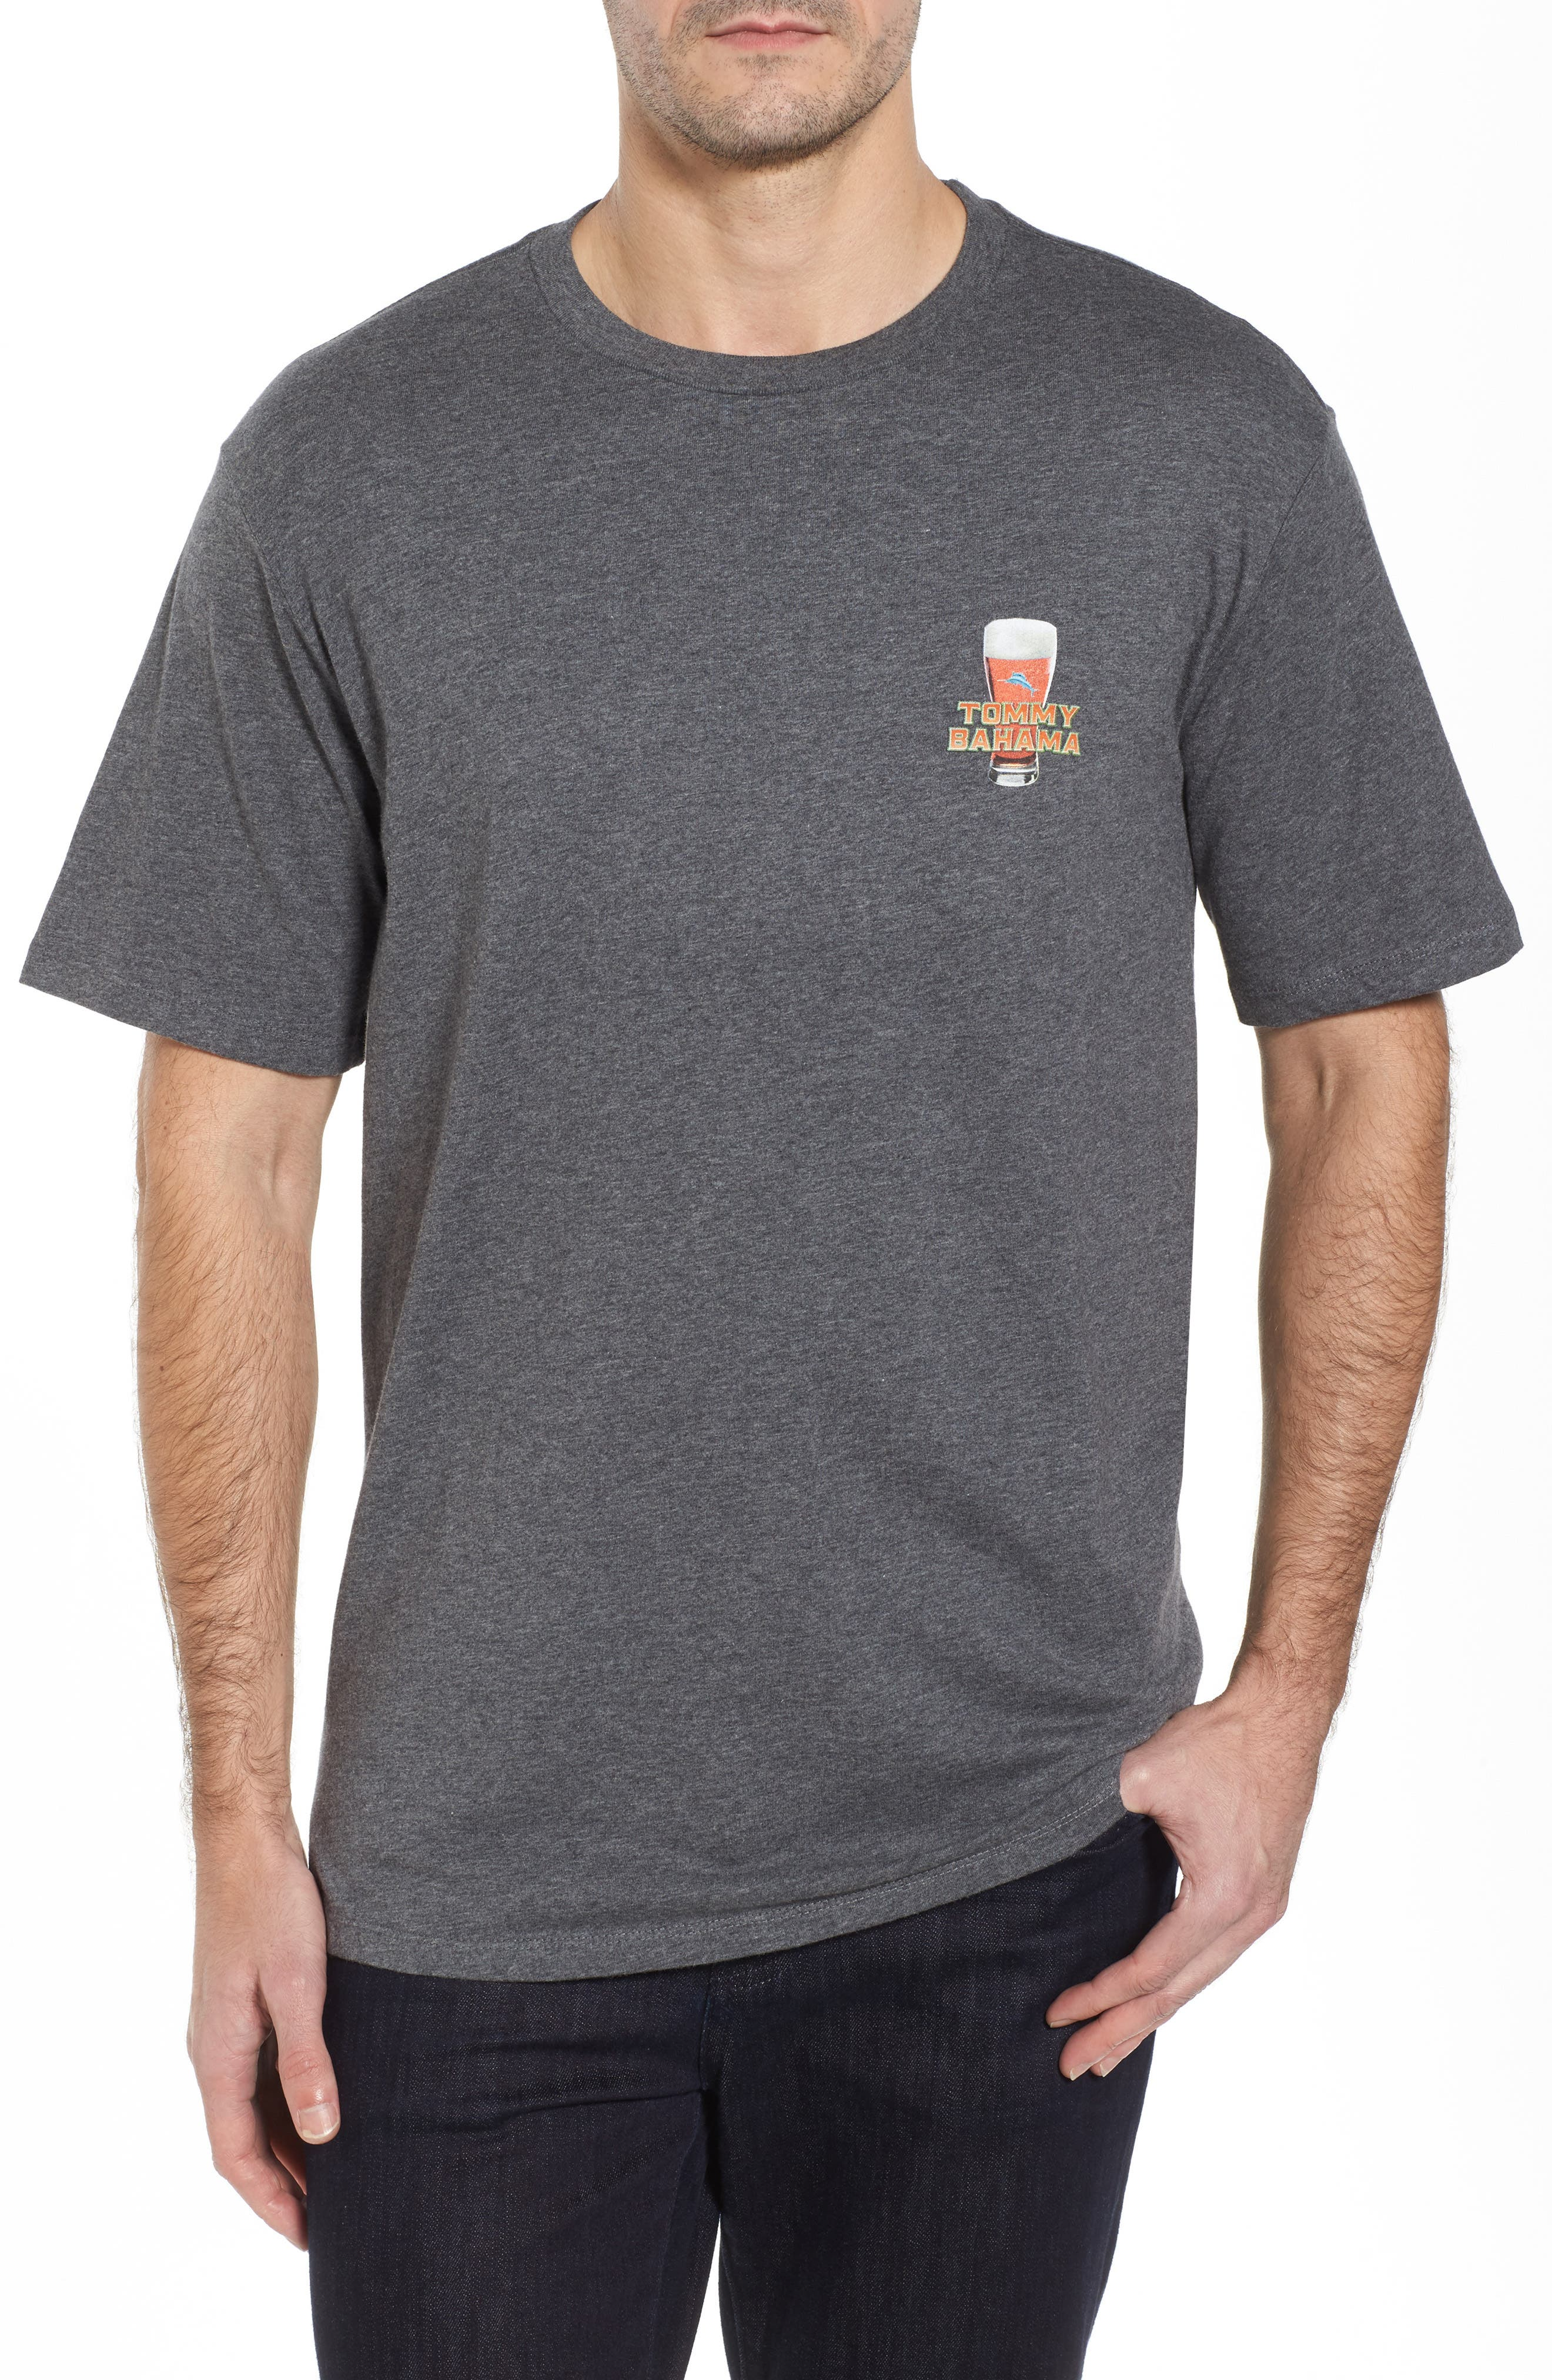 Room with a Brew T-Shirt,                             Main thumbnail 1, color,                             050